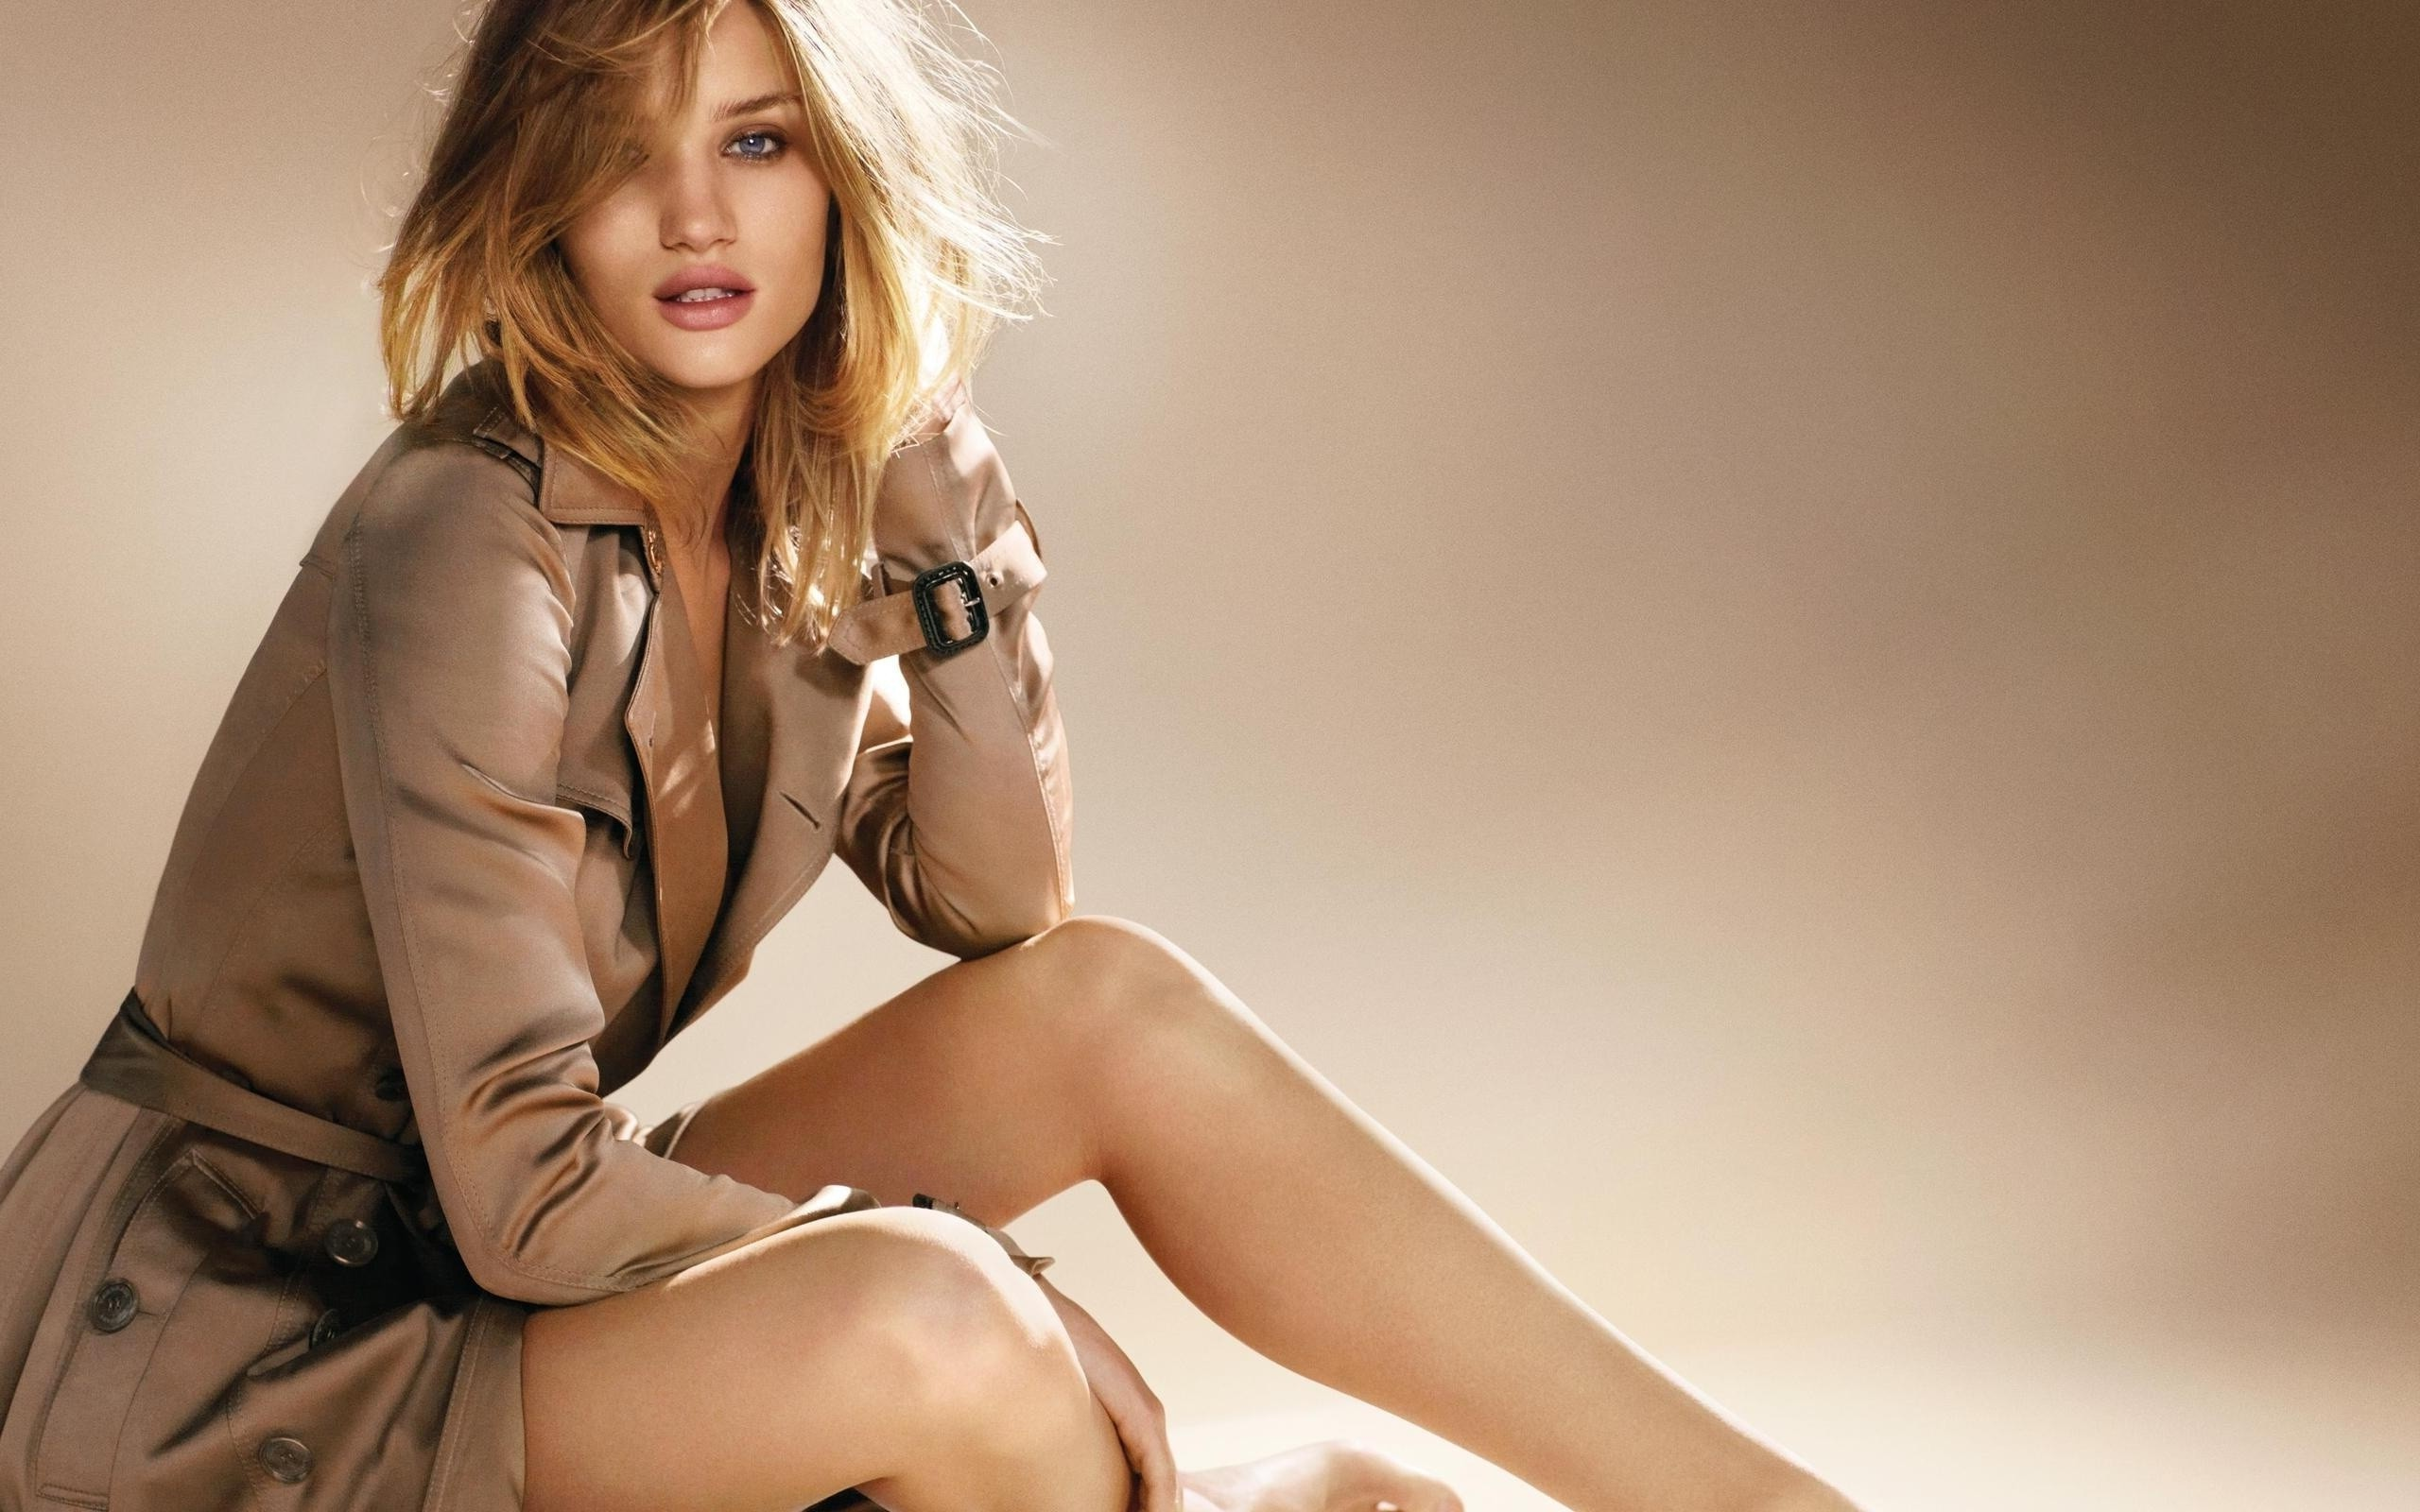 Rosie Huntington Whiteley Wallpaper